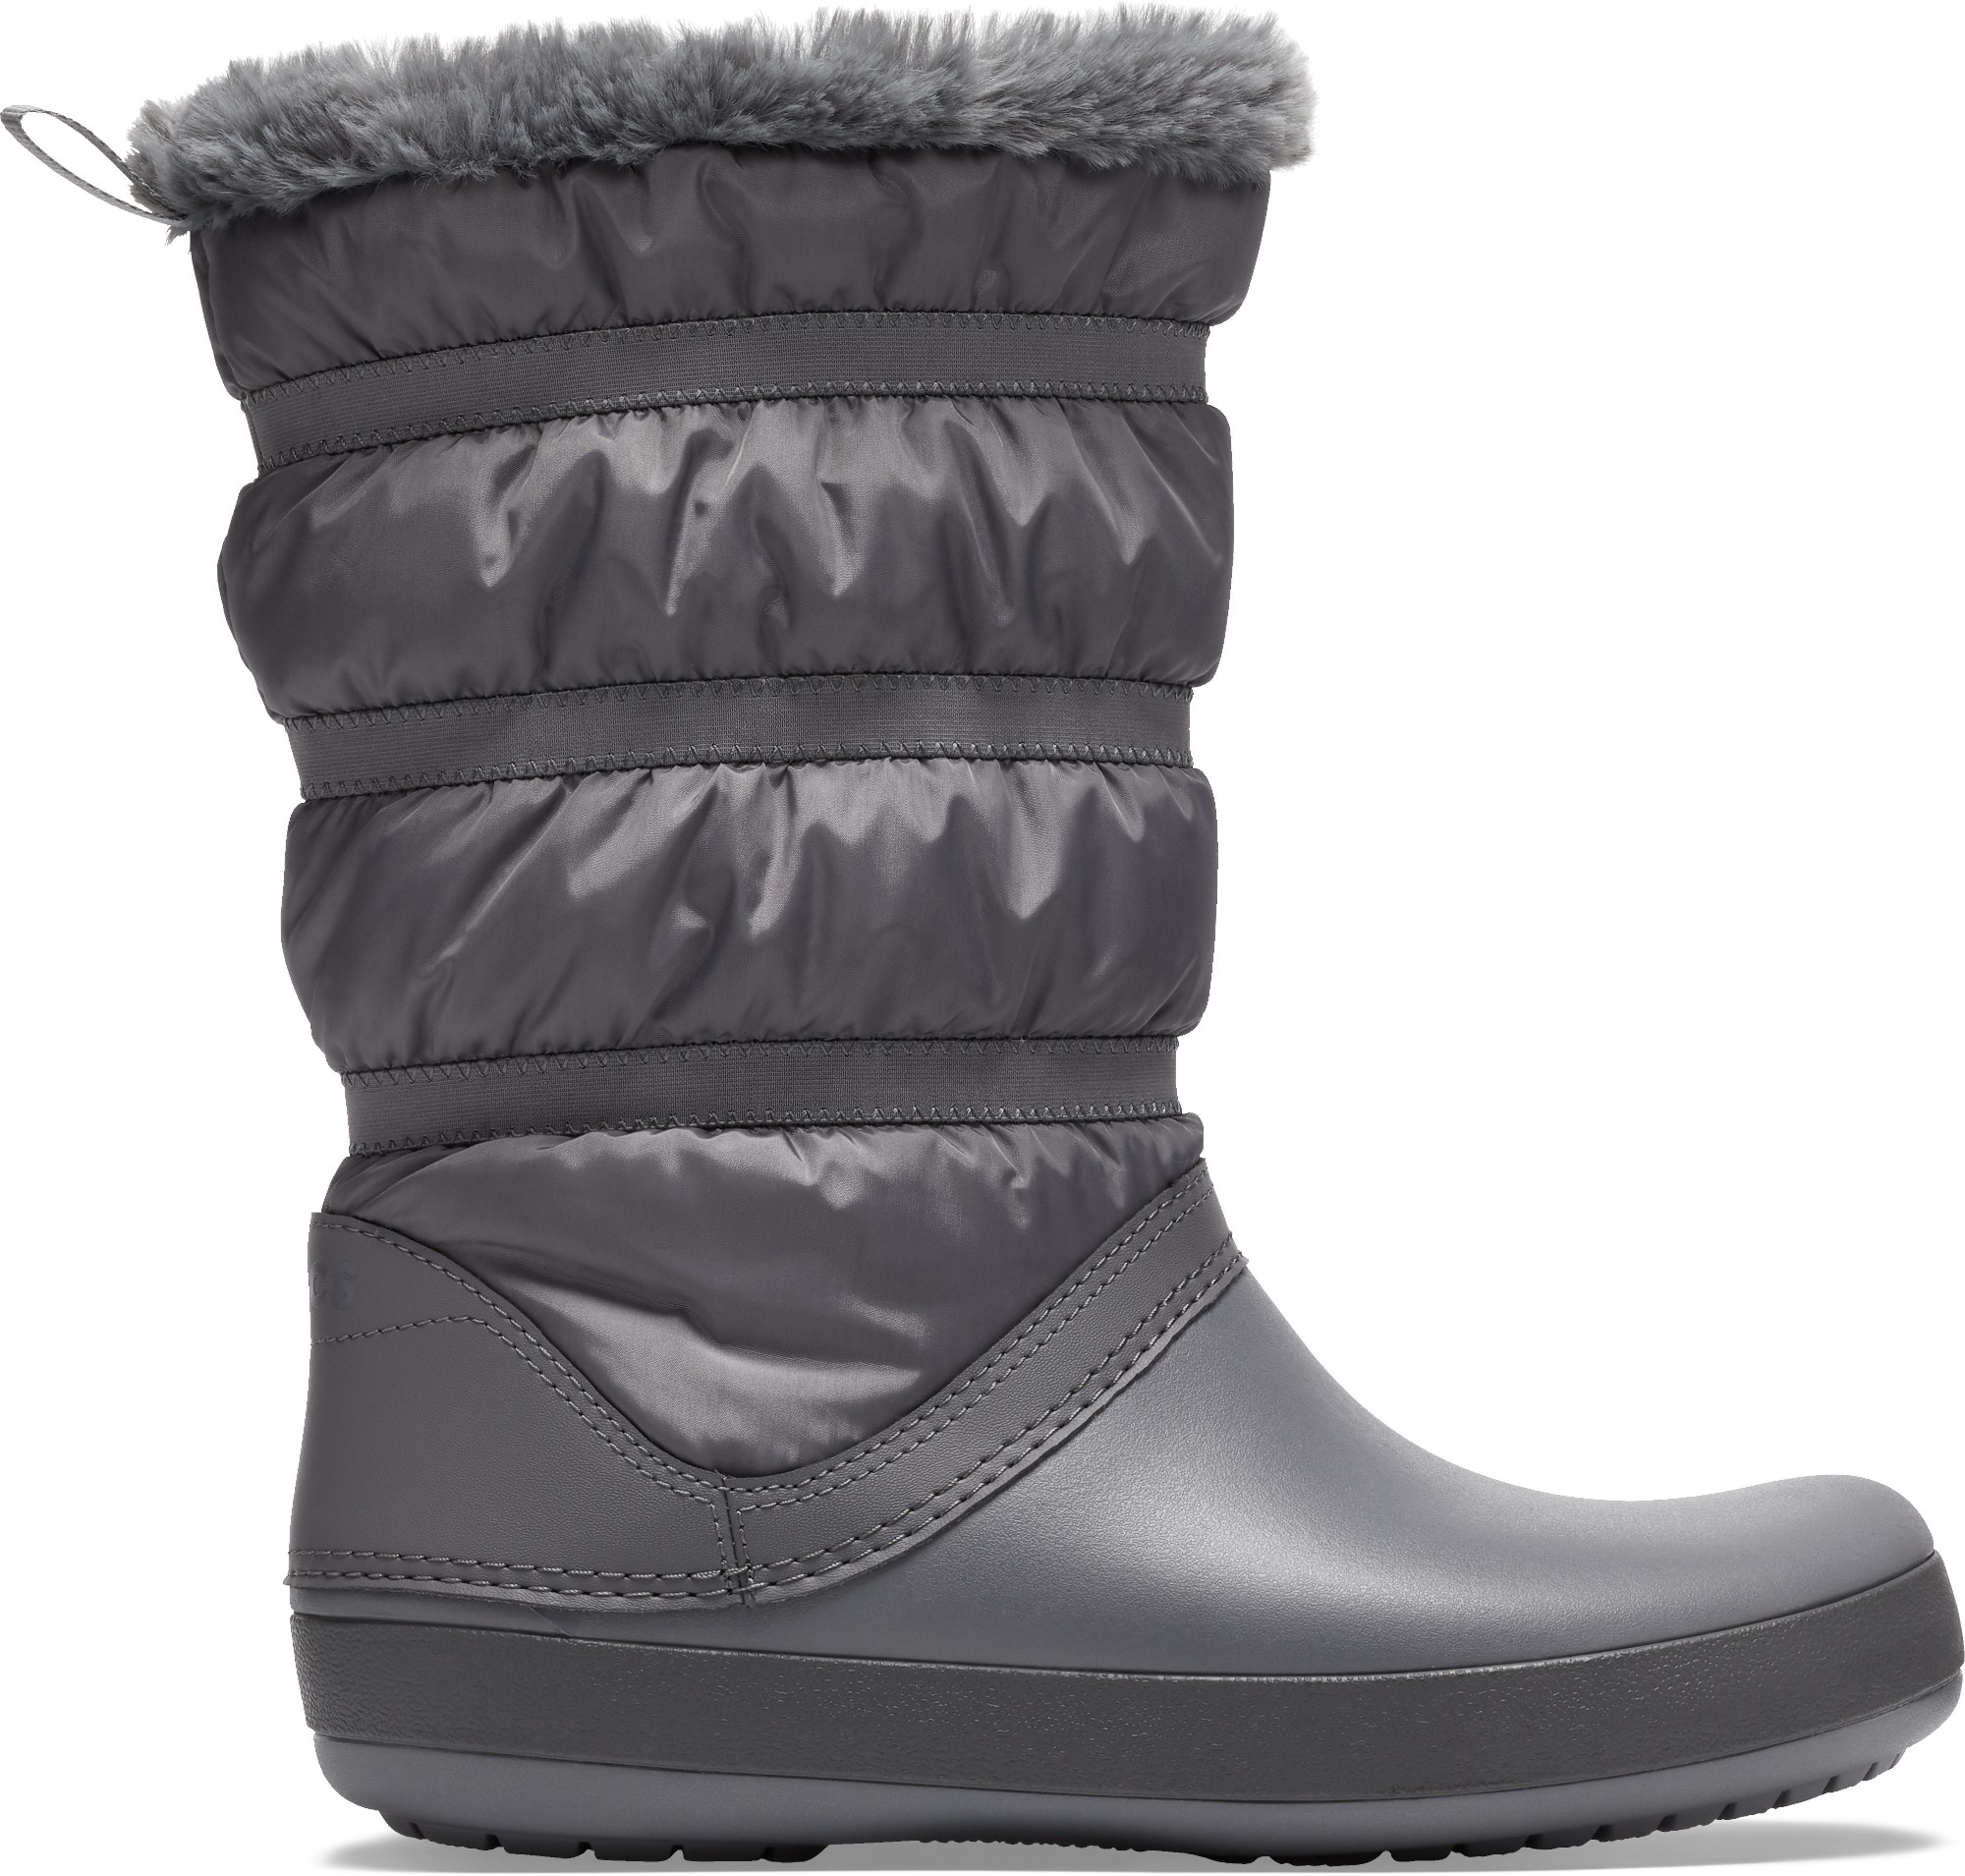 Crocs™ Women's Crocband Winter Boot Charcoal 38,5